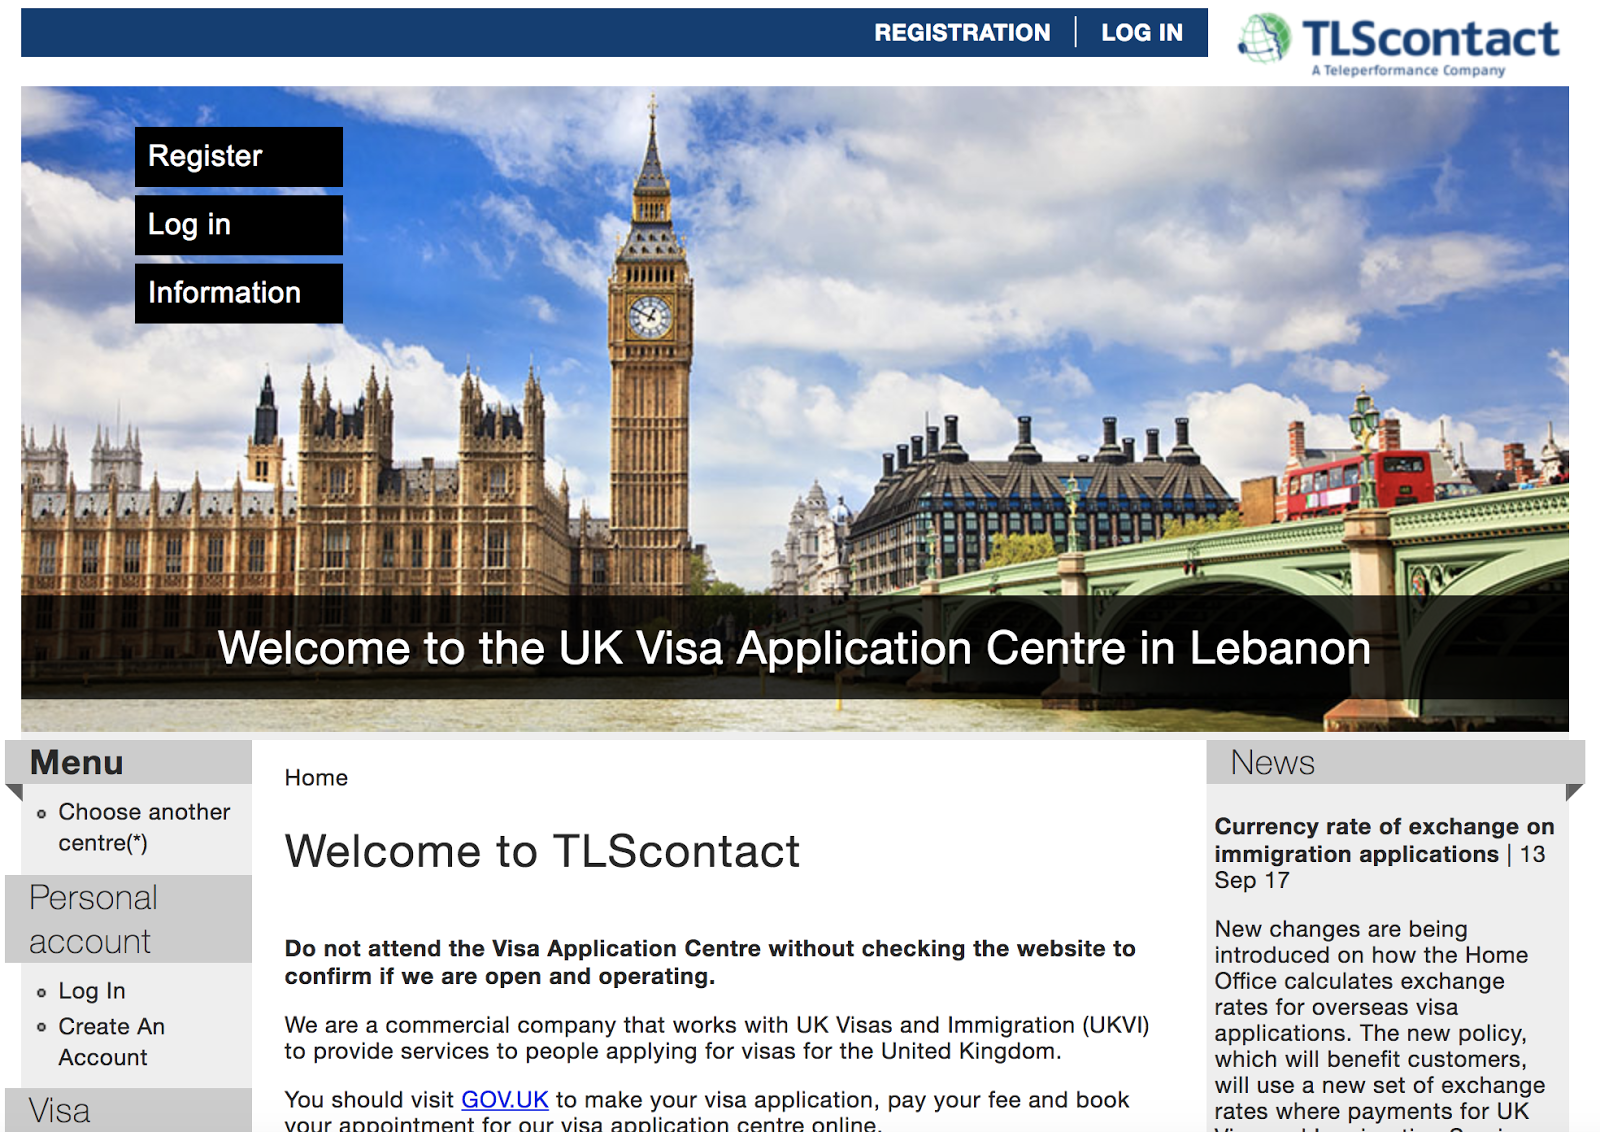 Successful application in UKVI's strict system ~ George Chalhoub